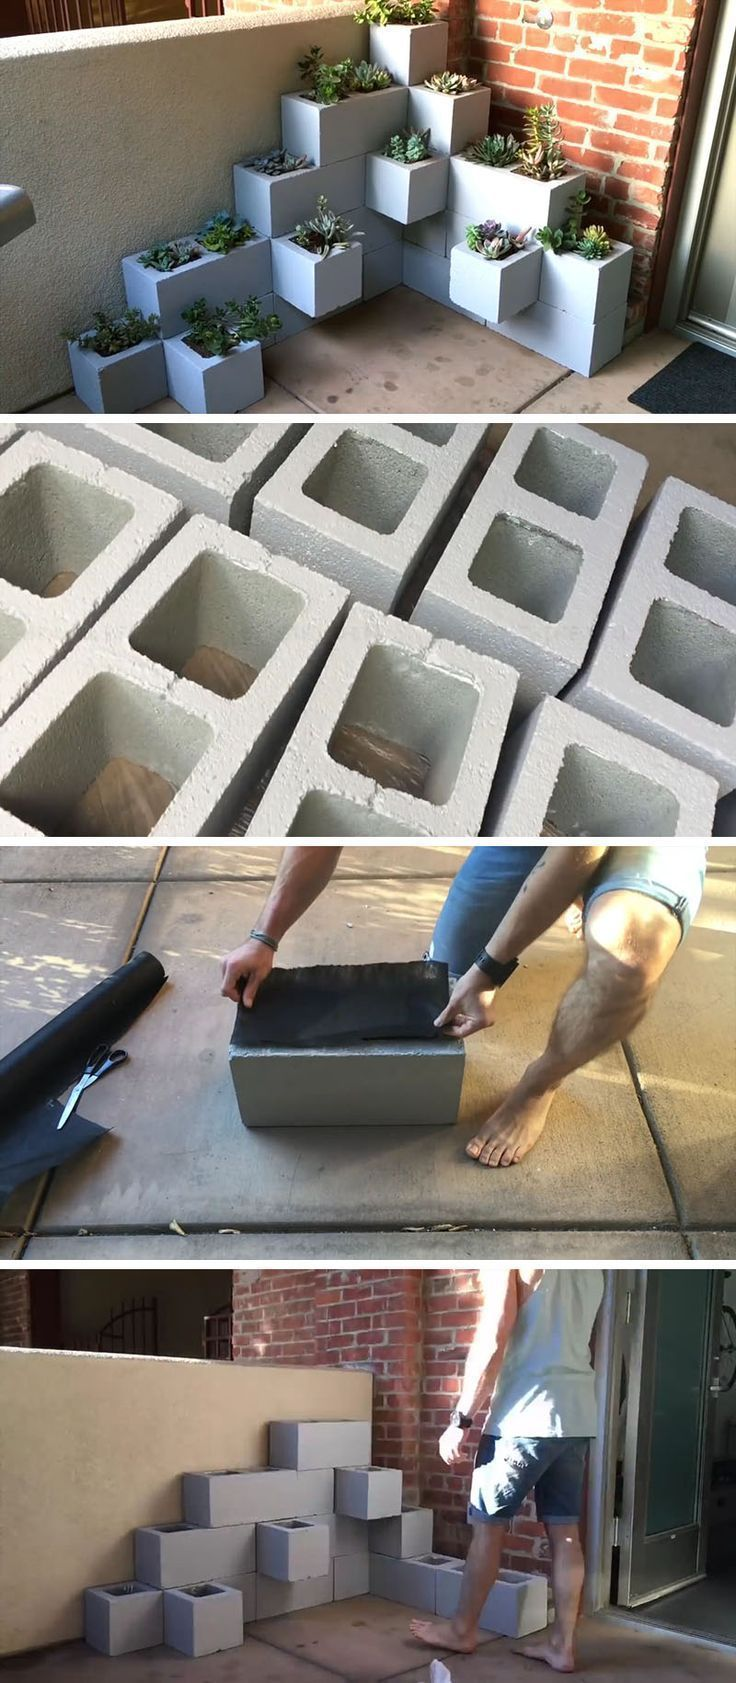 Make This Inexpensive And Modern Outdoor DIY Succulent Planter Using Cinder Blocks – Debbie Gonzales